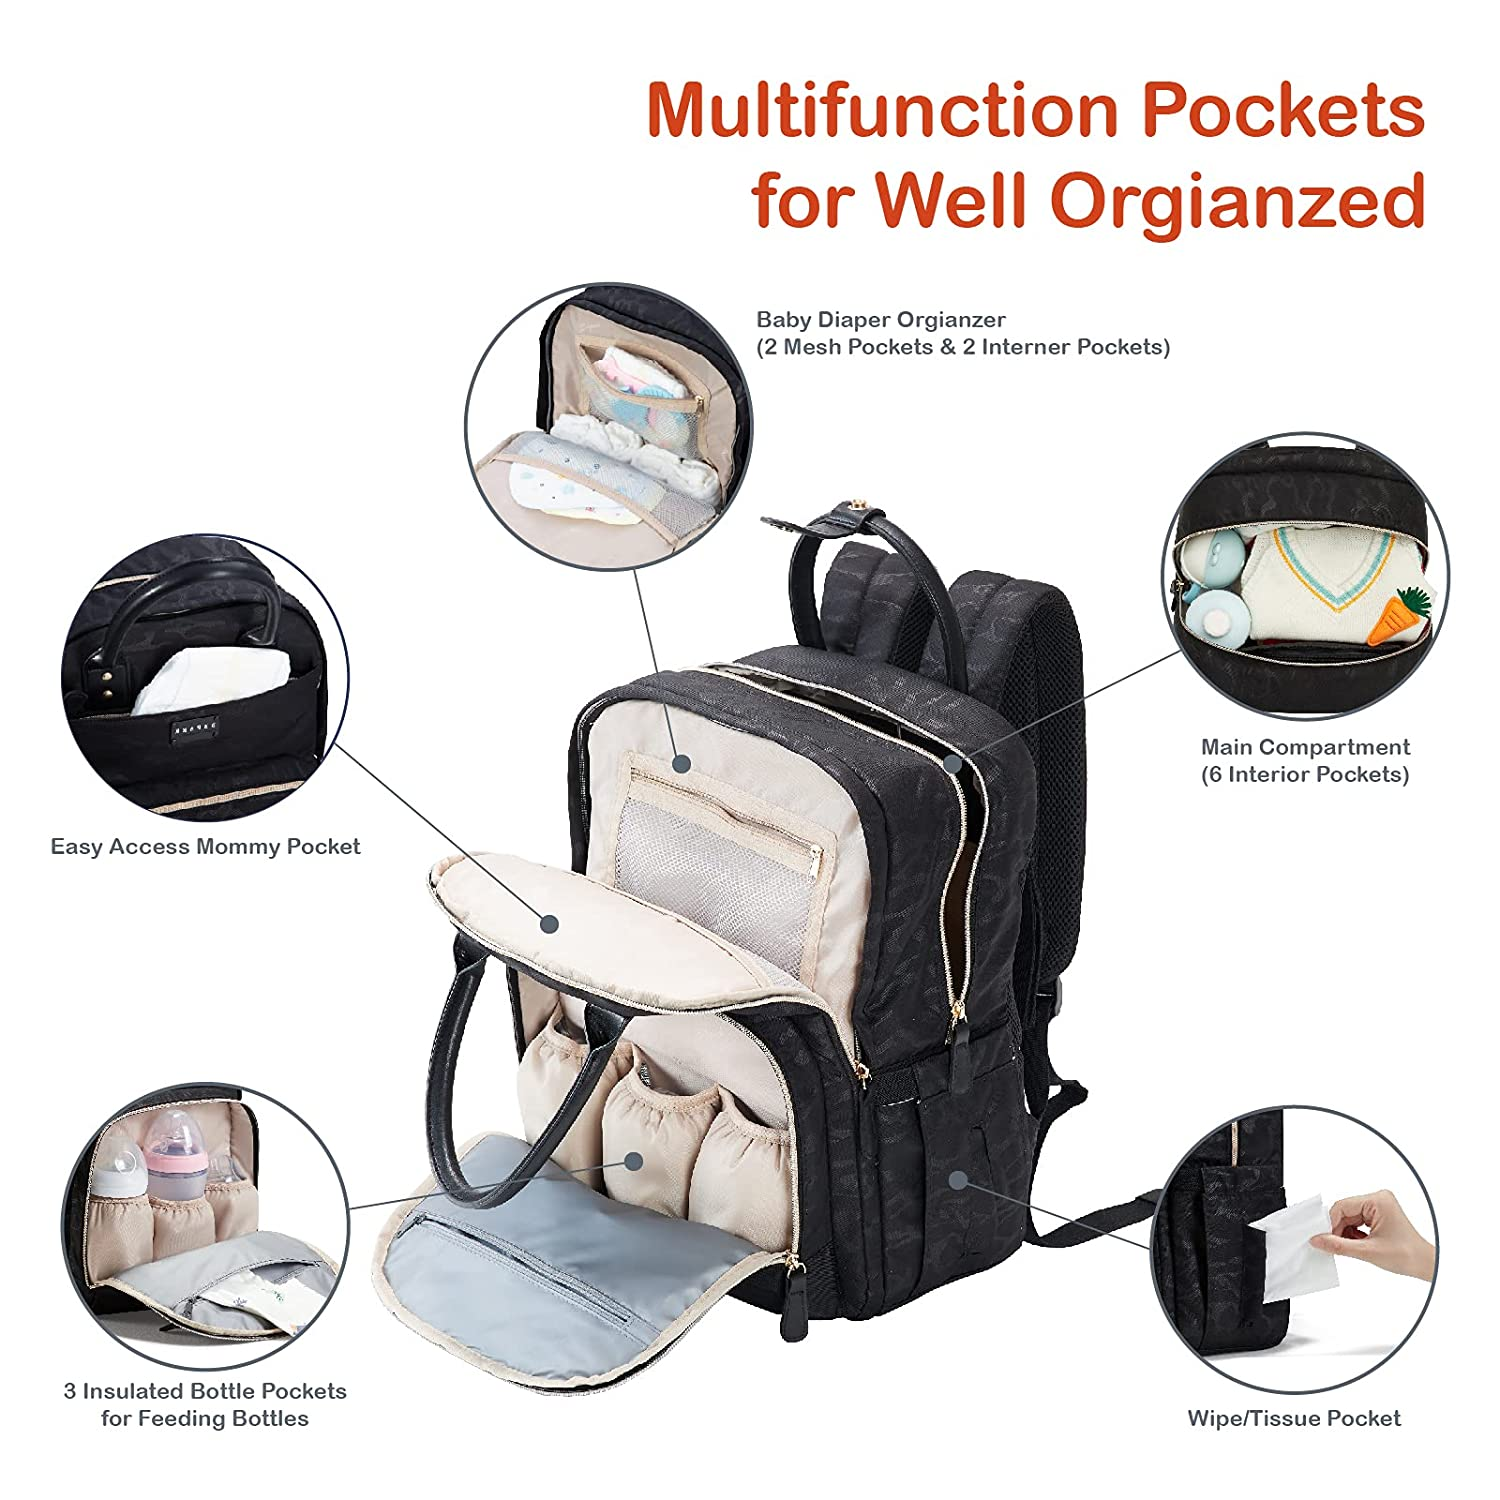 Diaper Bag Backpack with Stroller Straps, BBPARK - Multifunction Diaper Bags for Baby Boy Girl Waterproof Large Diaper Bag(Black, 17x13.5 x7.5 inches)